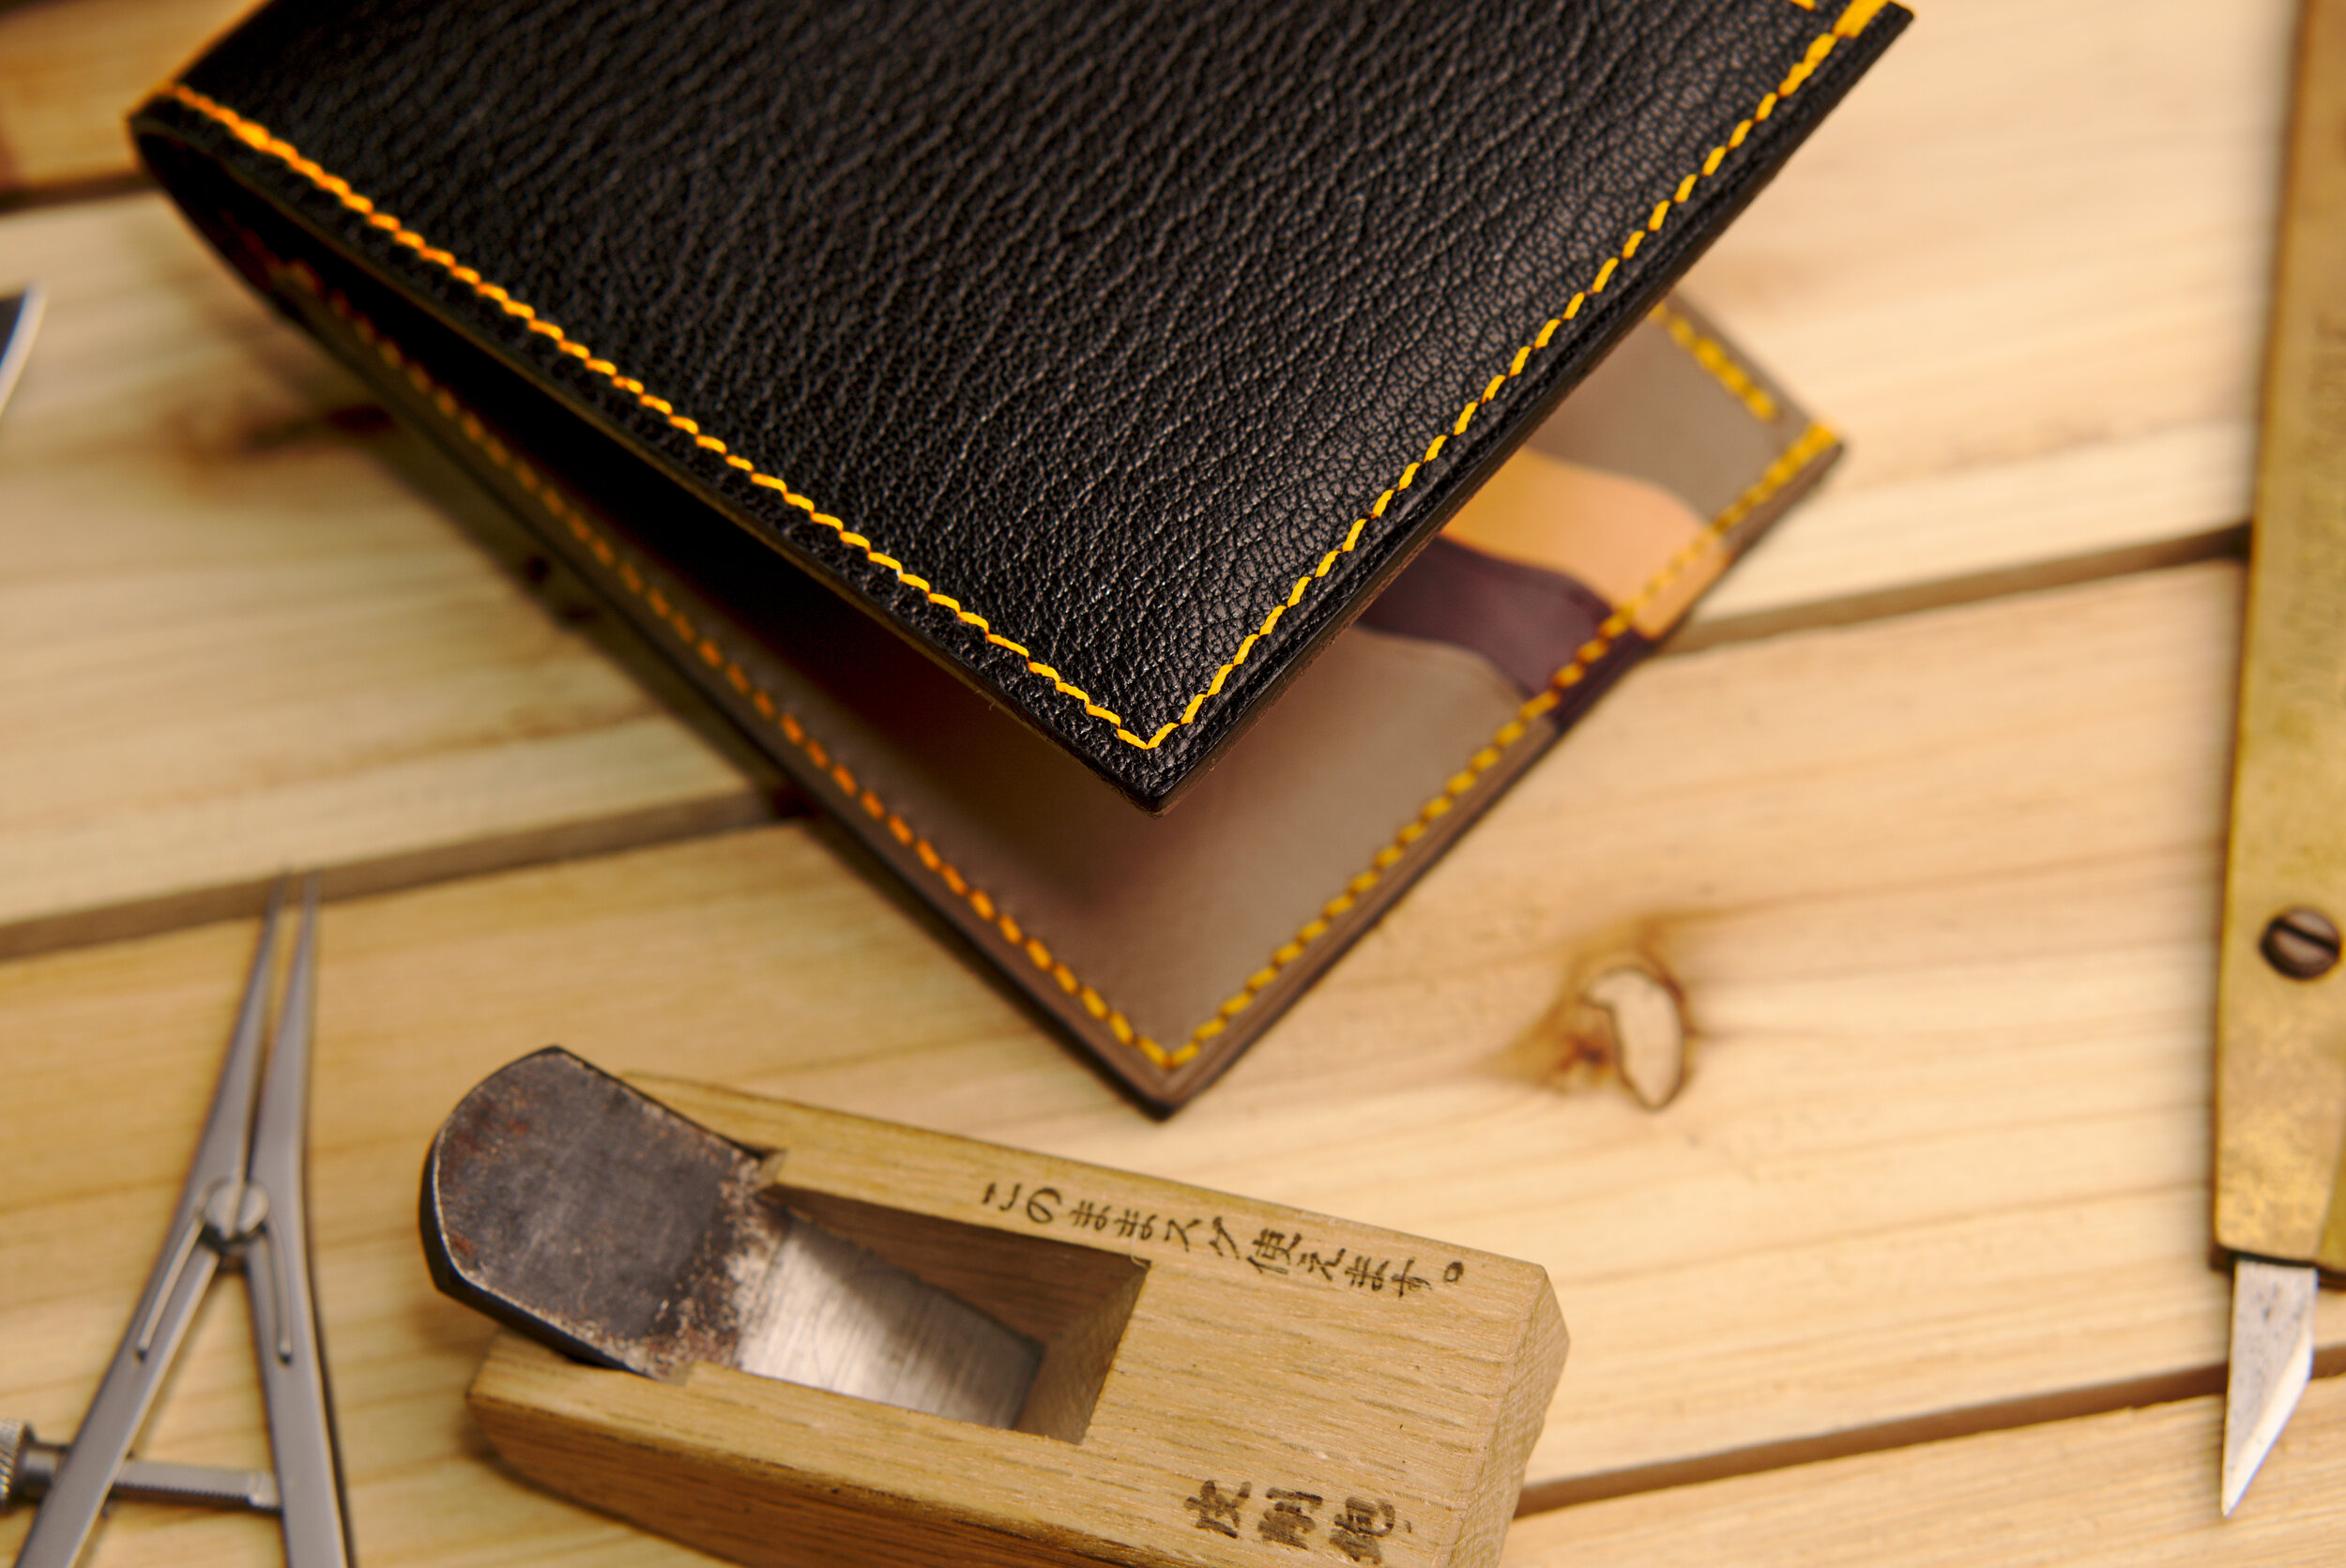 G M T Wallet Sewn by Hand